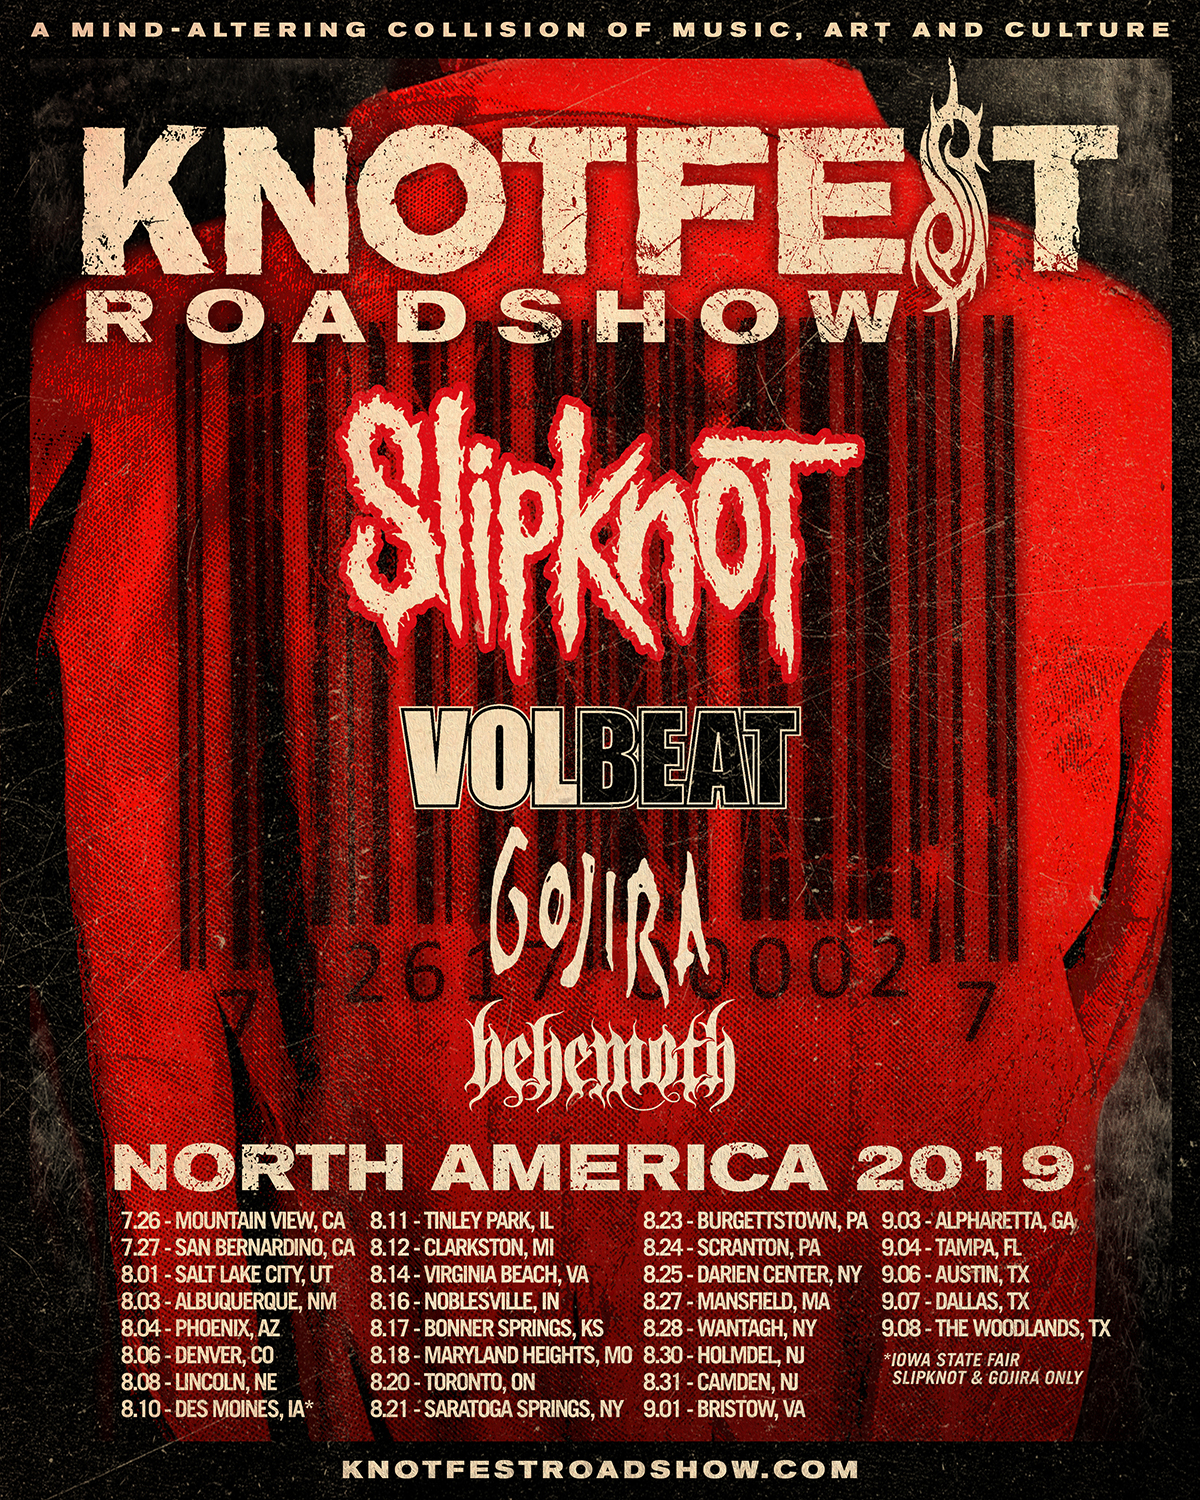 KNOTFEST Roadshow Artwork - 2019 (Web).jpg